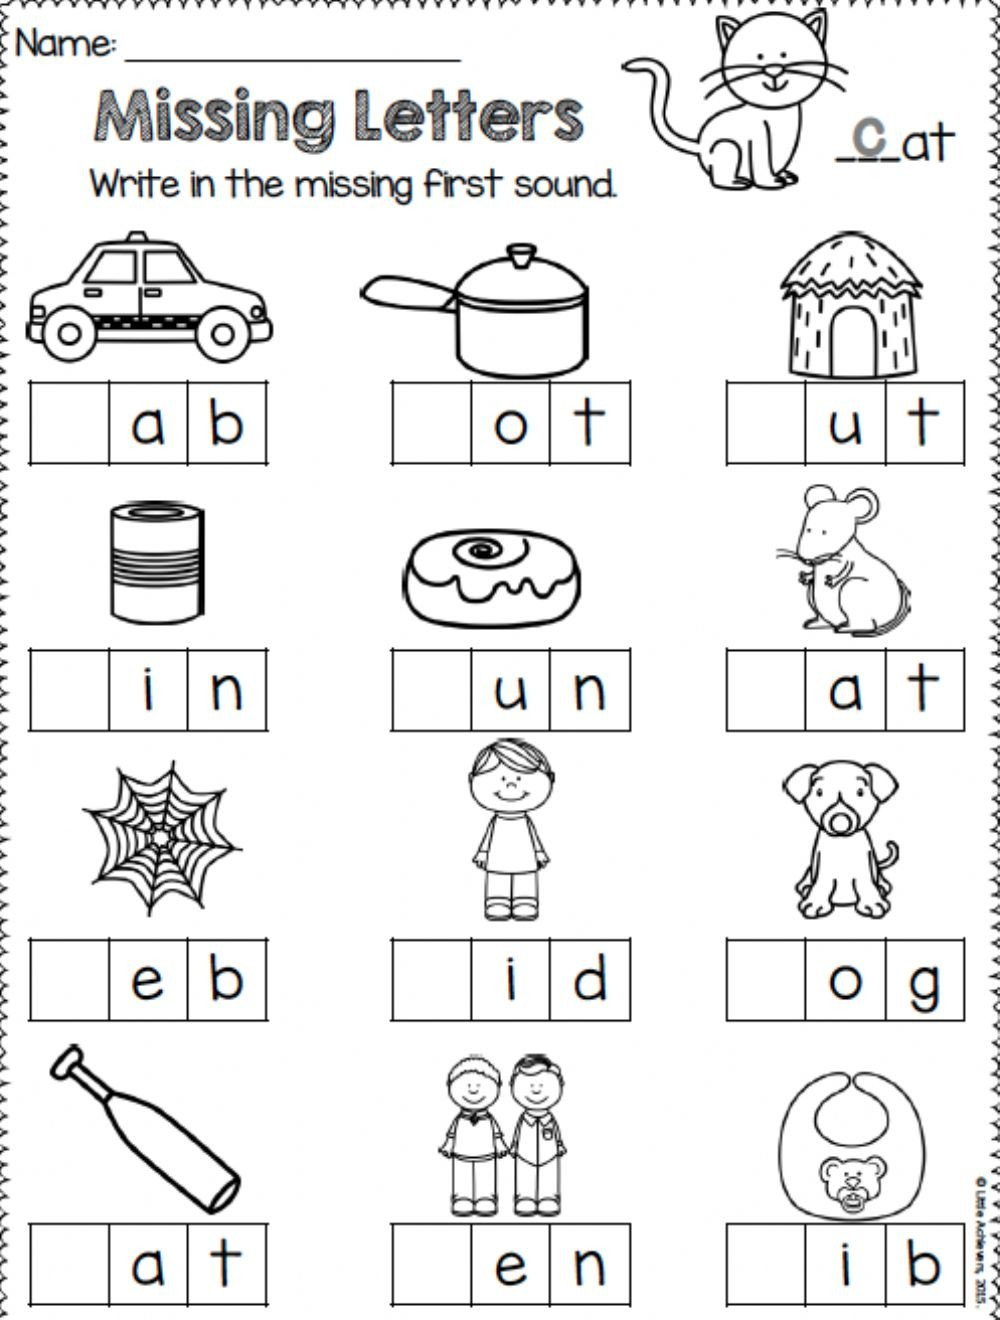 Missing Letter Alphabet Worksheets Missing Letters Interactive Worksheet